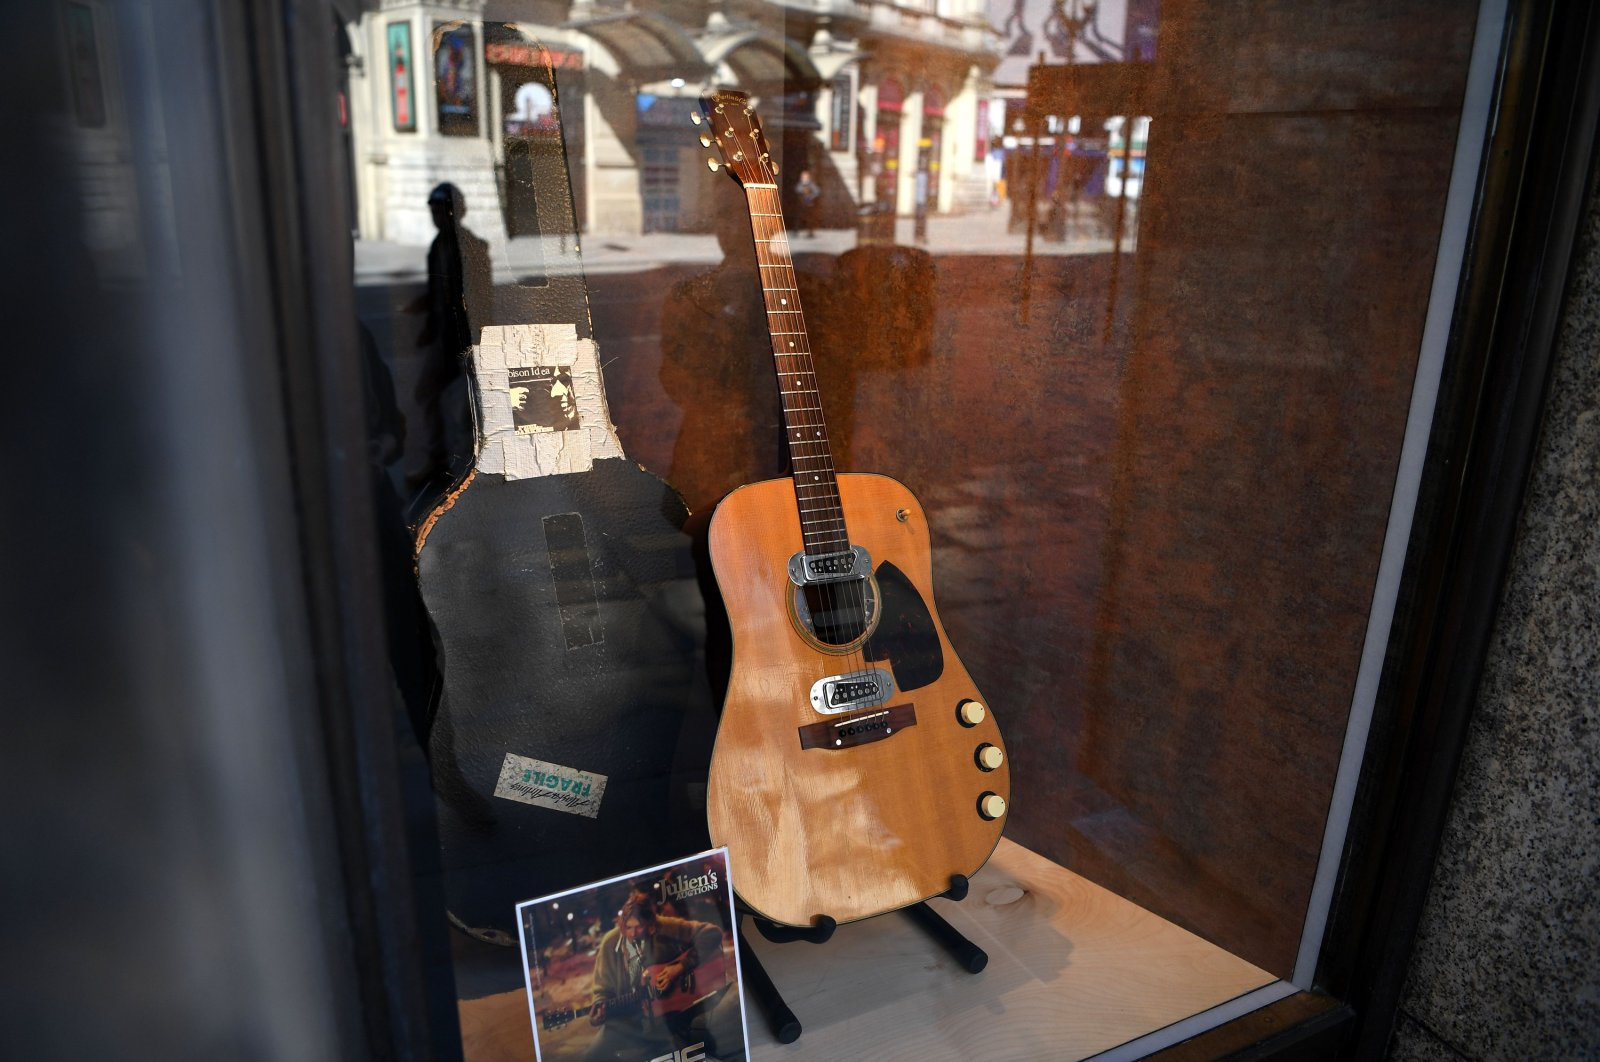 The guitar used by musician Kurt Cobain during Nirvana's famous MTV Unplugged in New York concert in 1993, is displayed in the window of the Hard Rock Cafe Piccadilly Circus in central London, England, May 15, 2020. (AFP Photo)